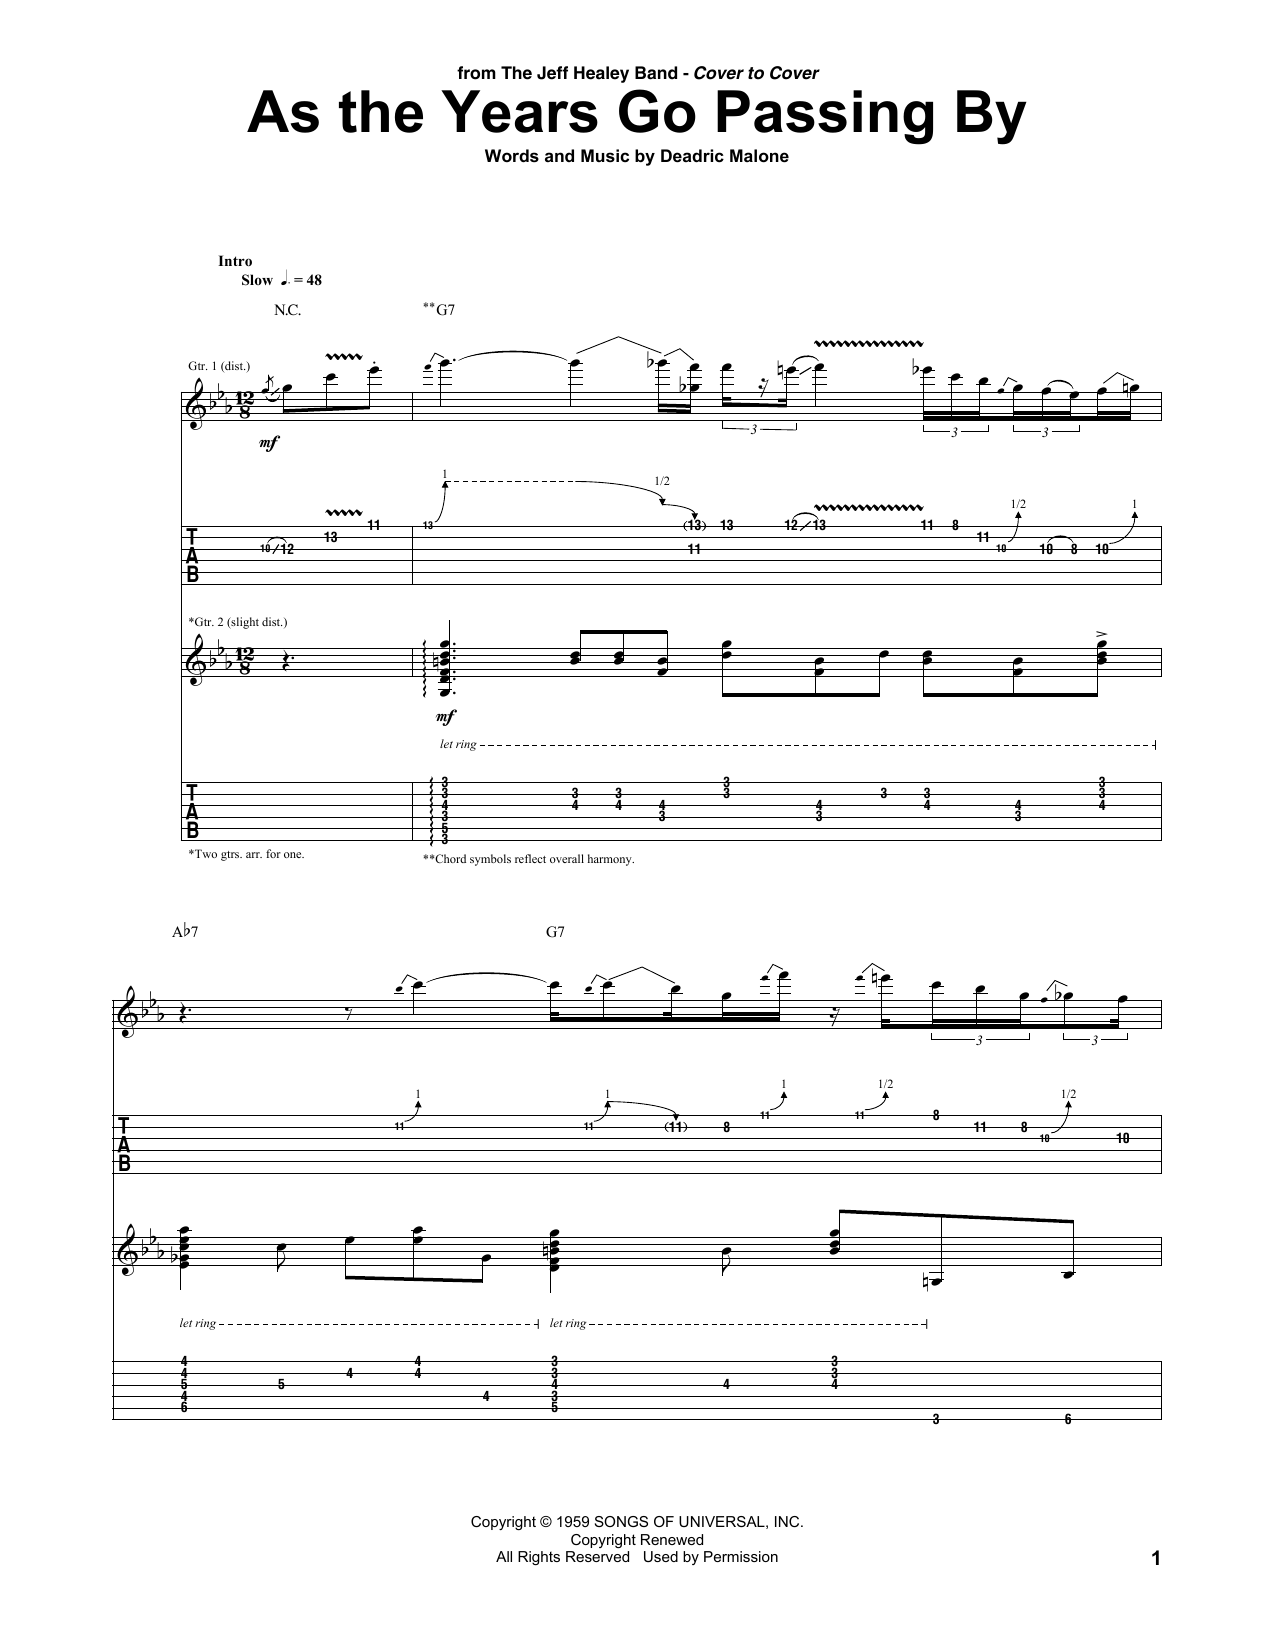 As The Years Go Passing By Jeff Healey Band Guitar Tab